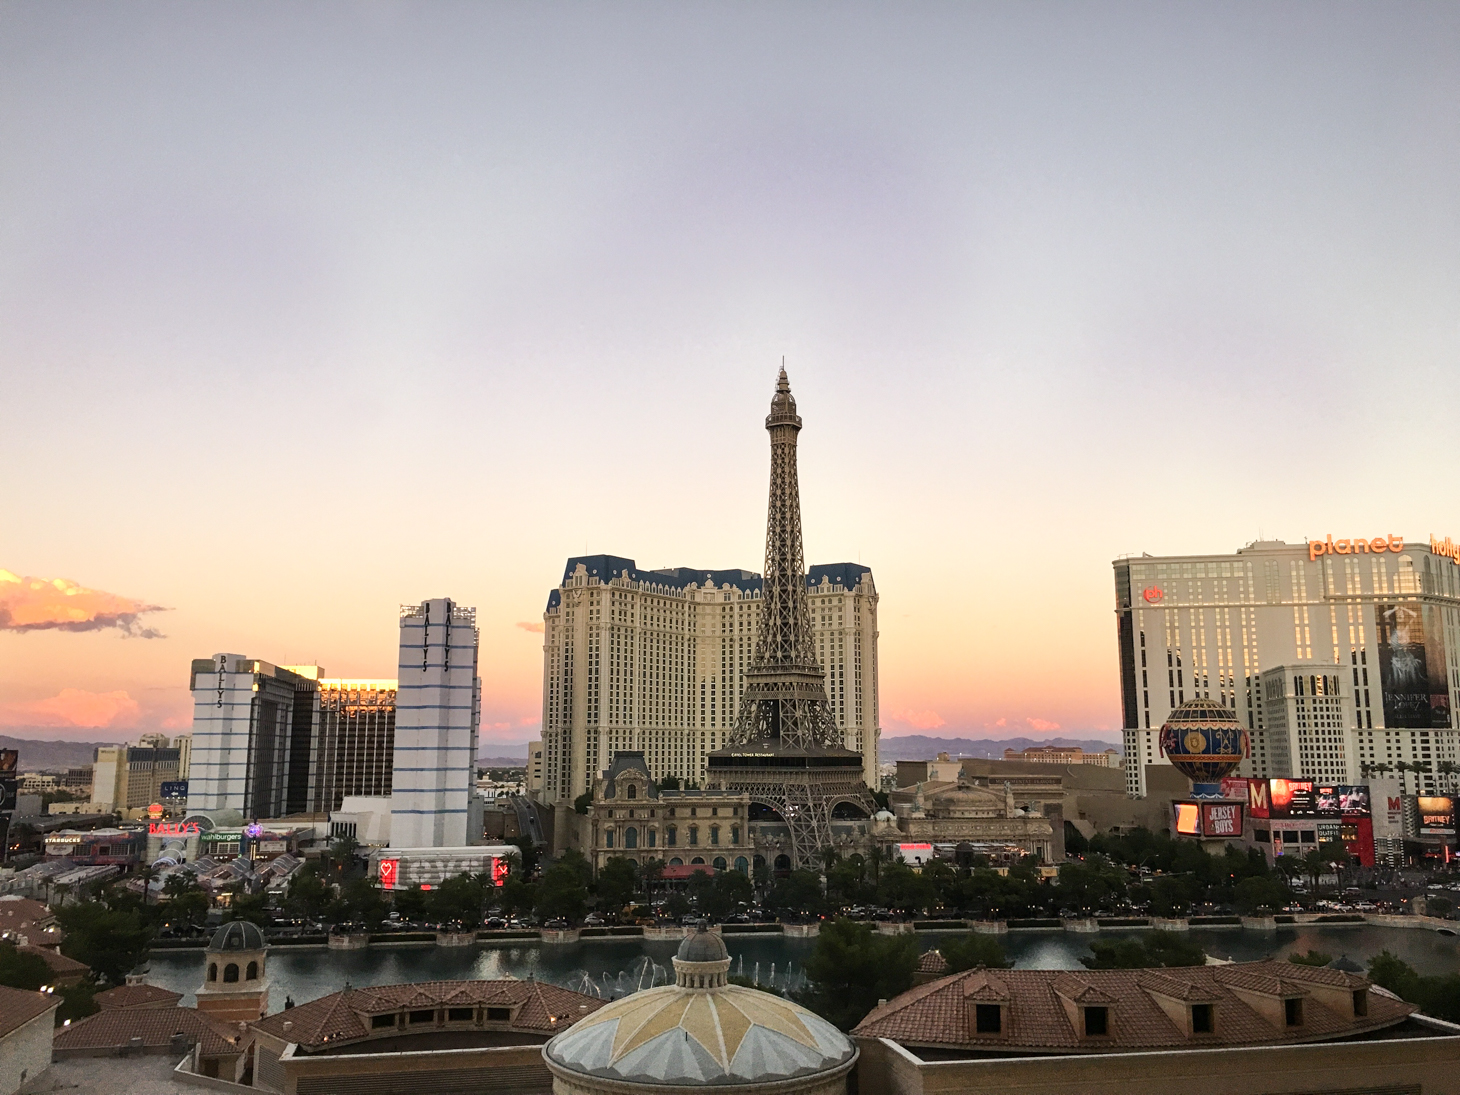 Las Vegas photo diary